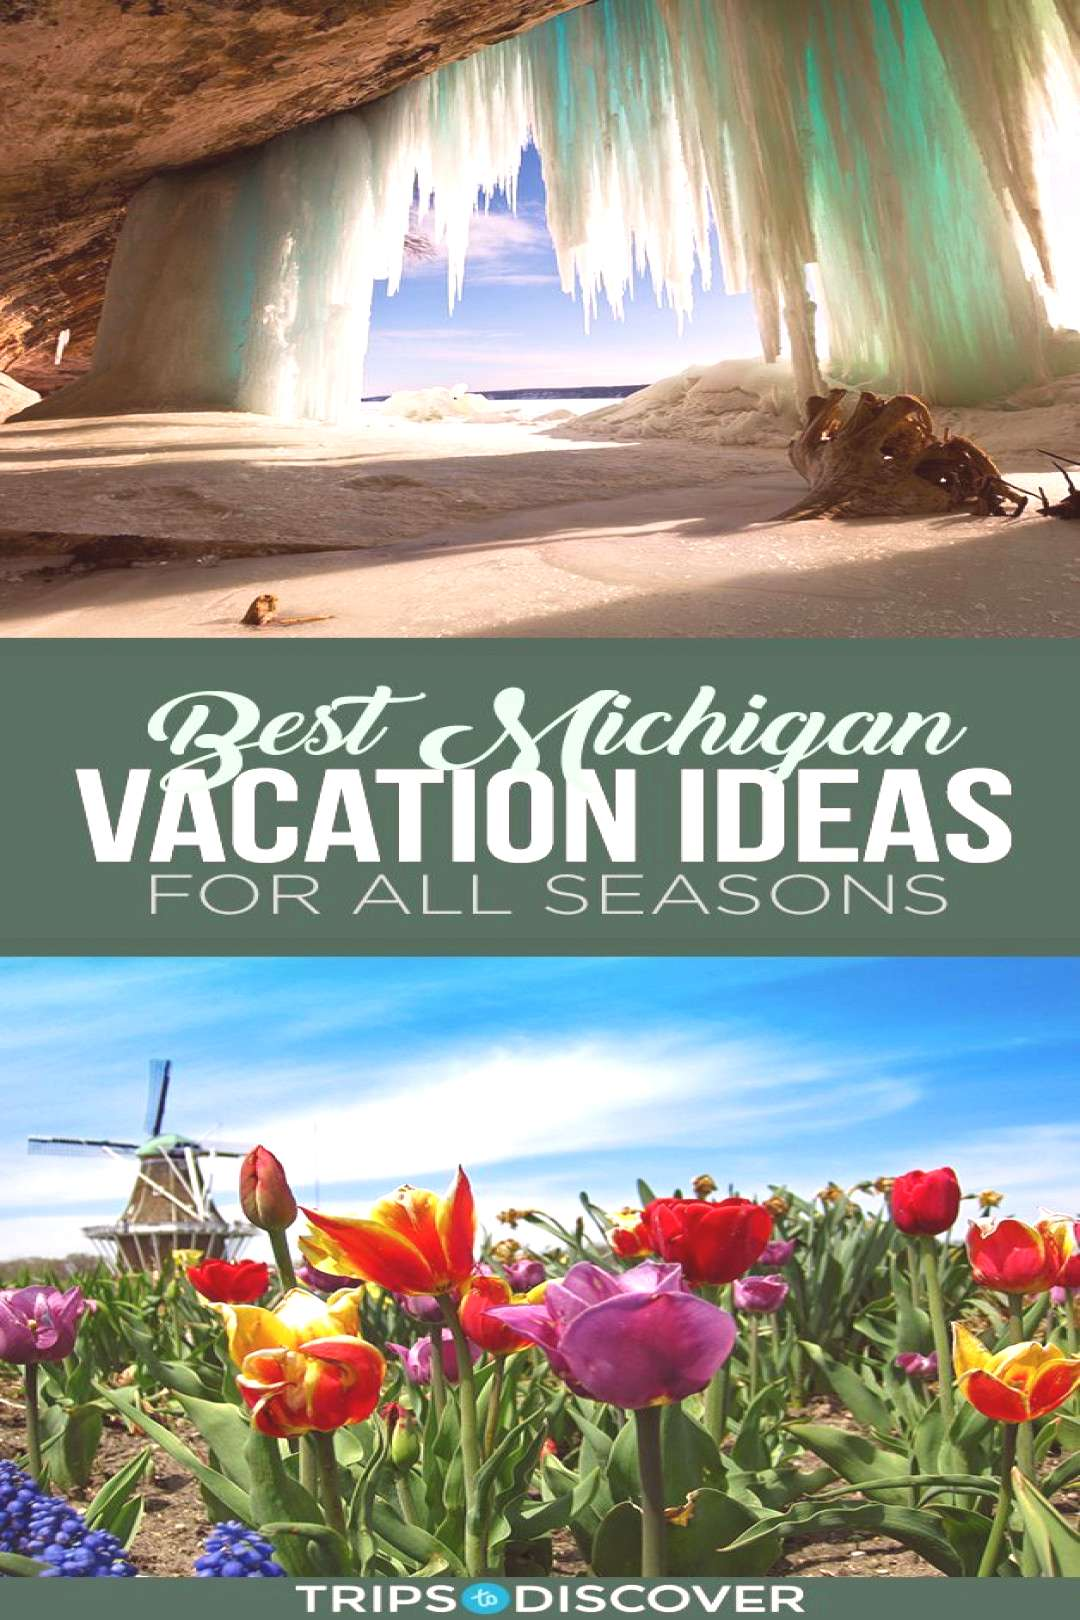 The 12 Best Michigan Vacation Ideas for All Seasons 12 Best Michigan Vacation Ideas for All Seasons